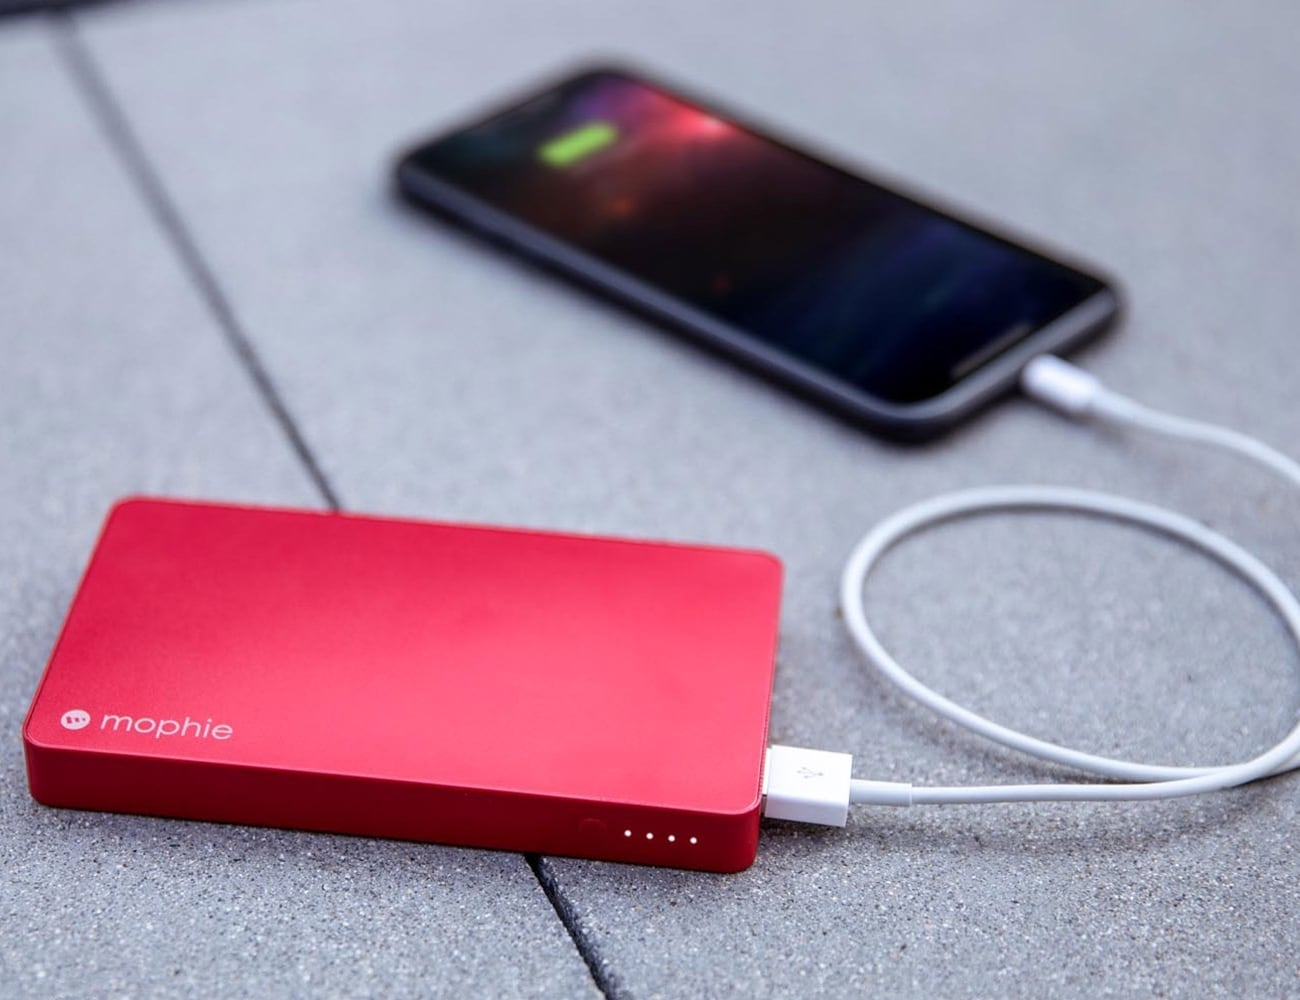 mophie powerstation with Lightning connector 5,050 mAh Power Bank charges two devices simultaneously